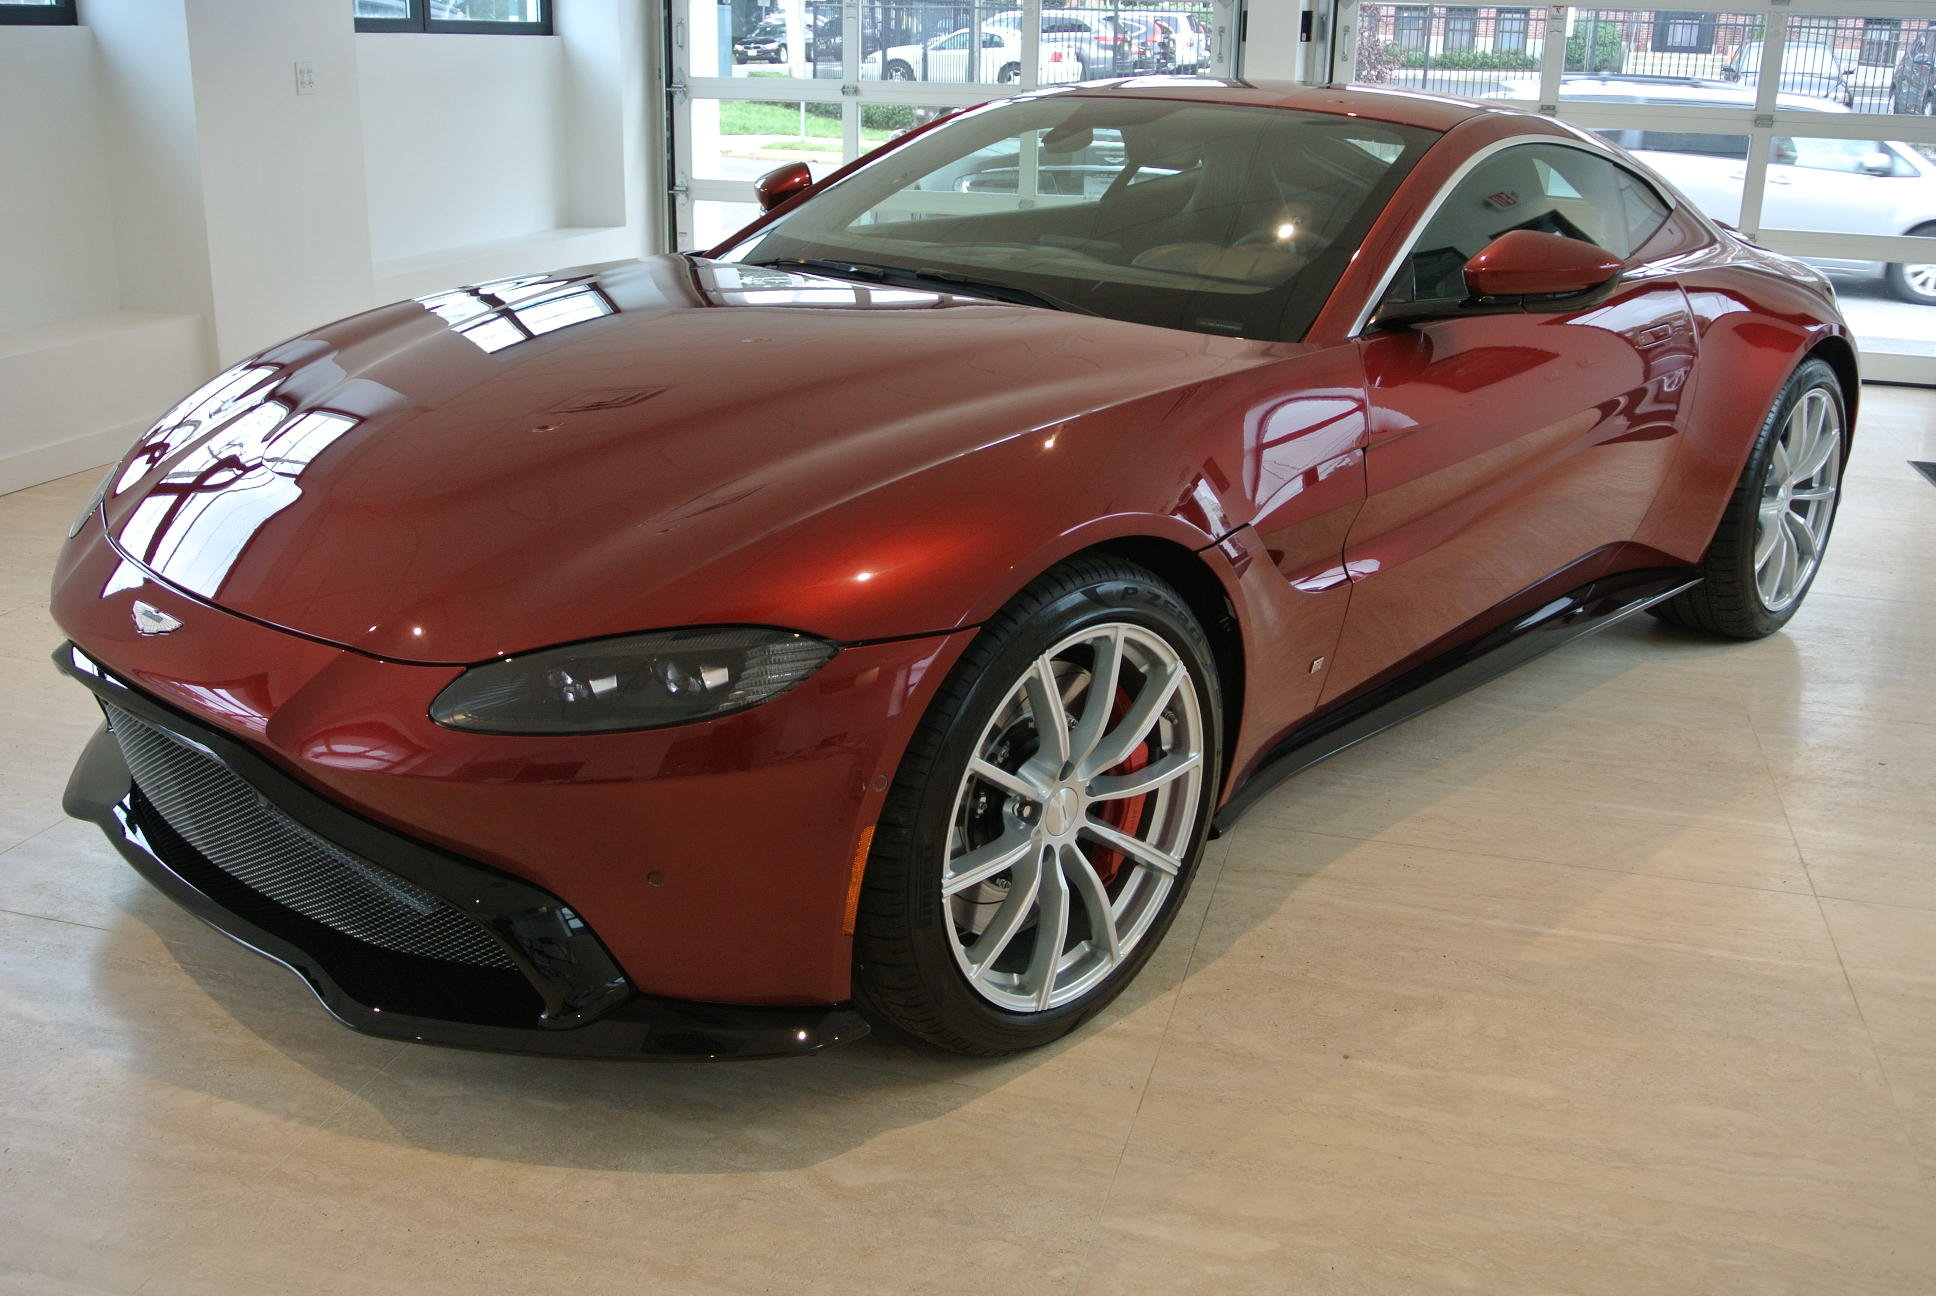 Special offer on 2019 Aston Vantage 2019 Aston Martin Vantage